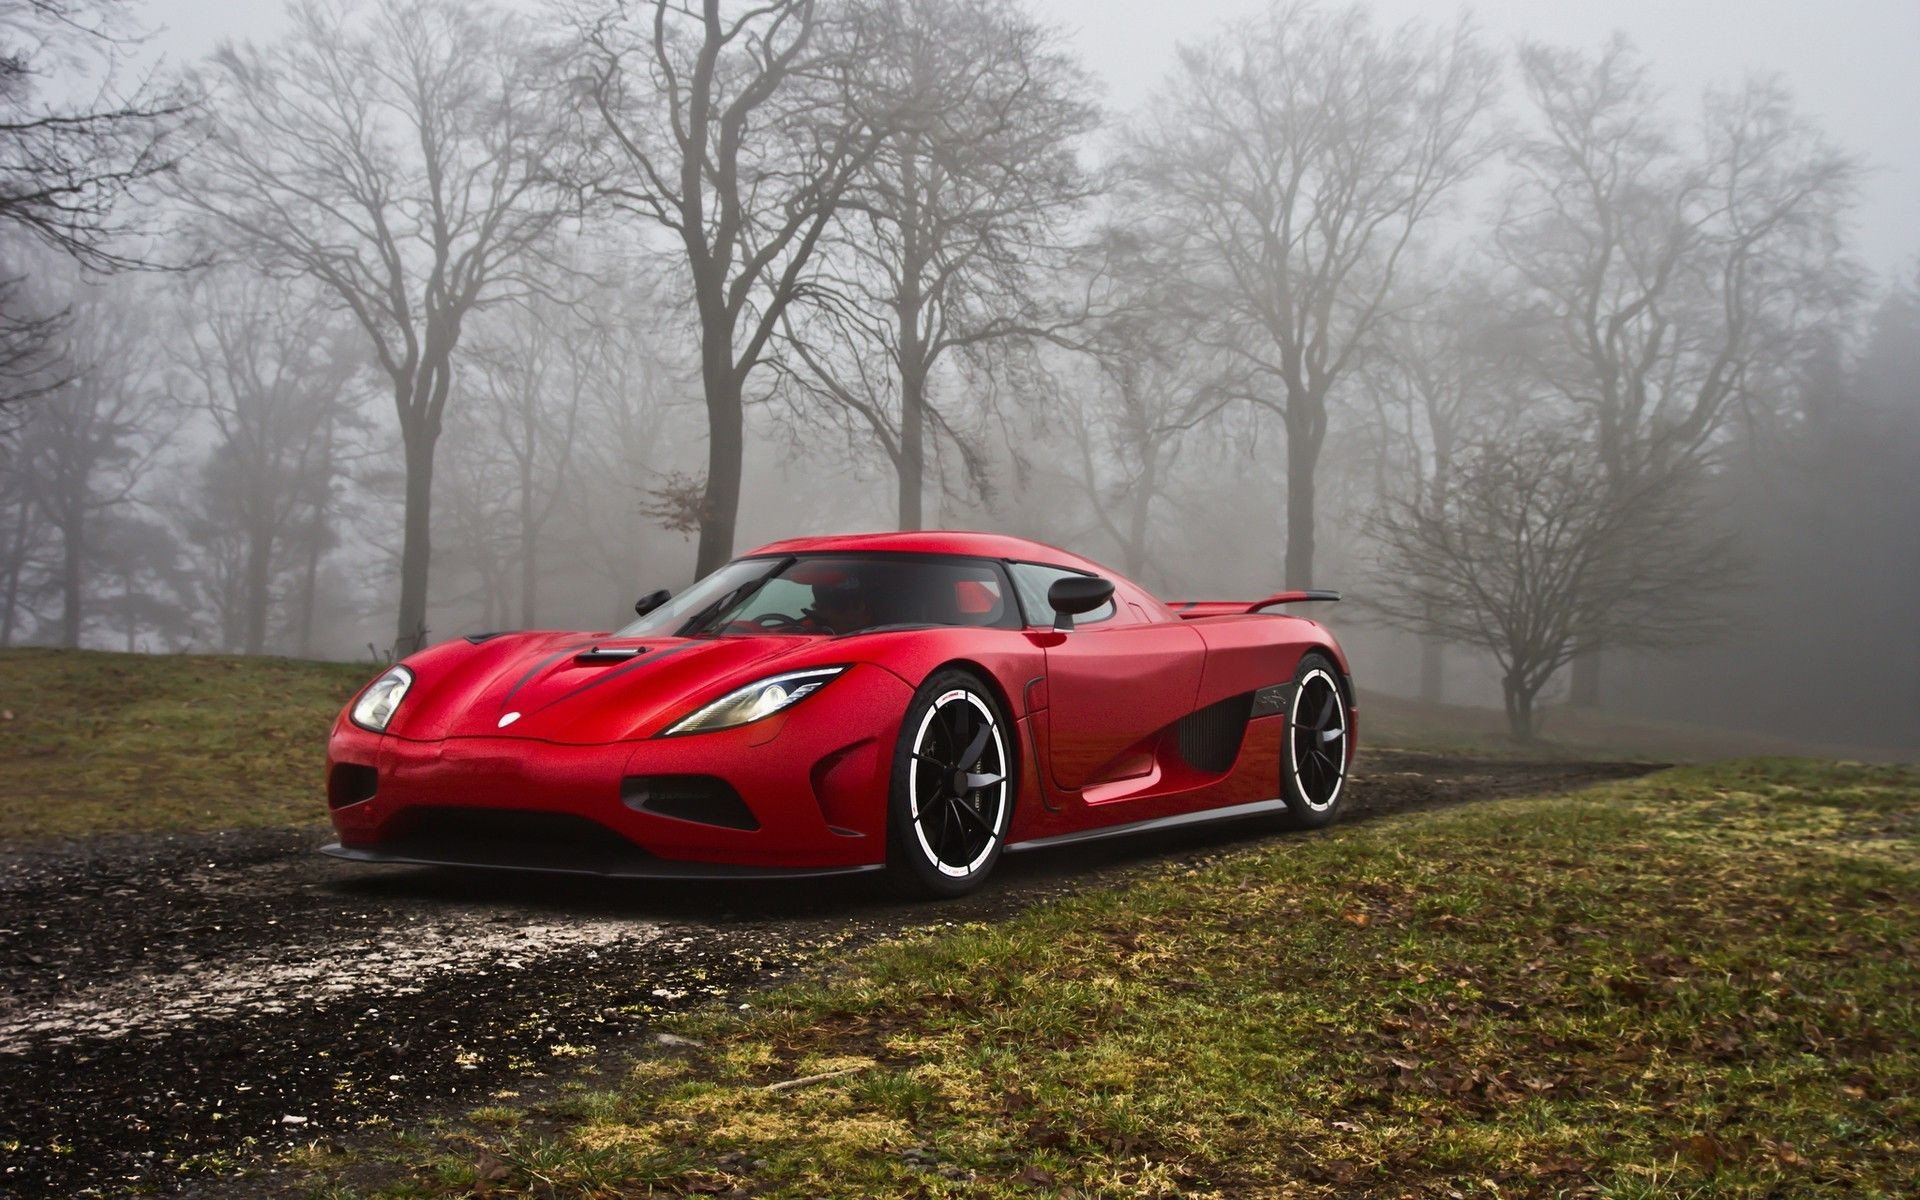 1920x1200 Koenigsegg Agera R Wallpaper Hd Red Koenigsegg agera r wallpapers